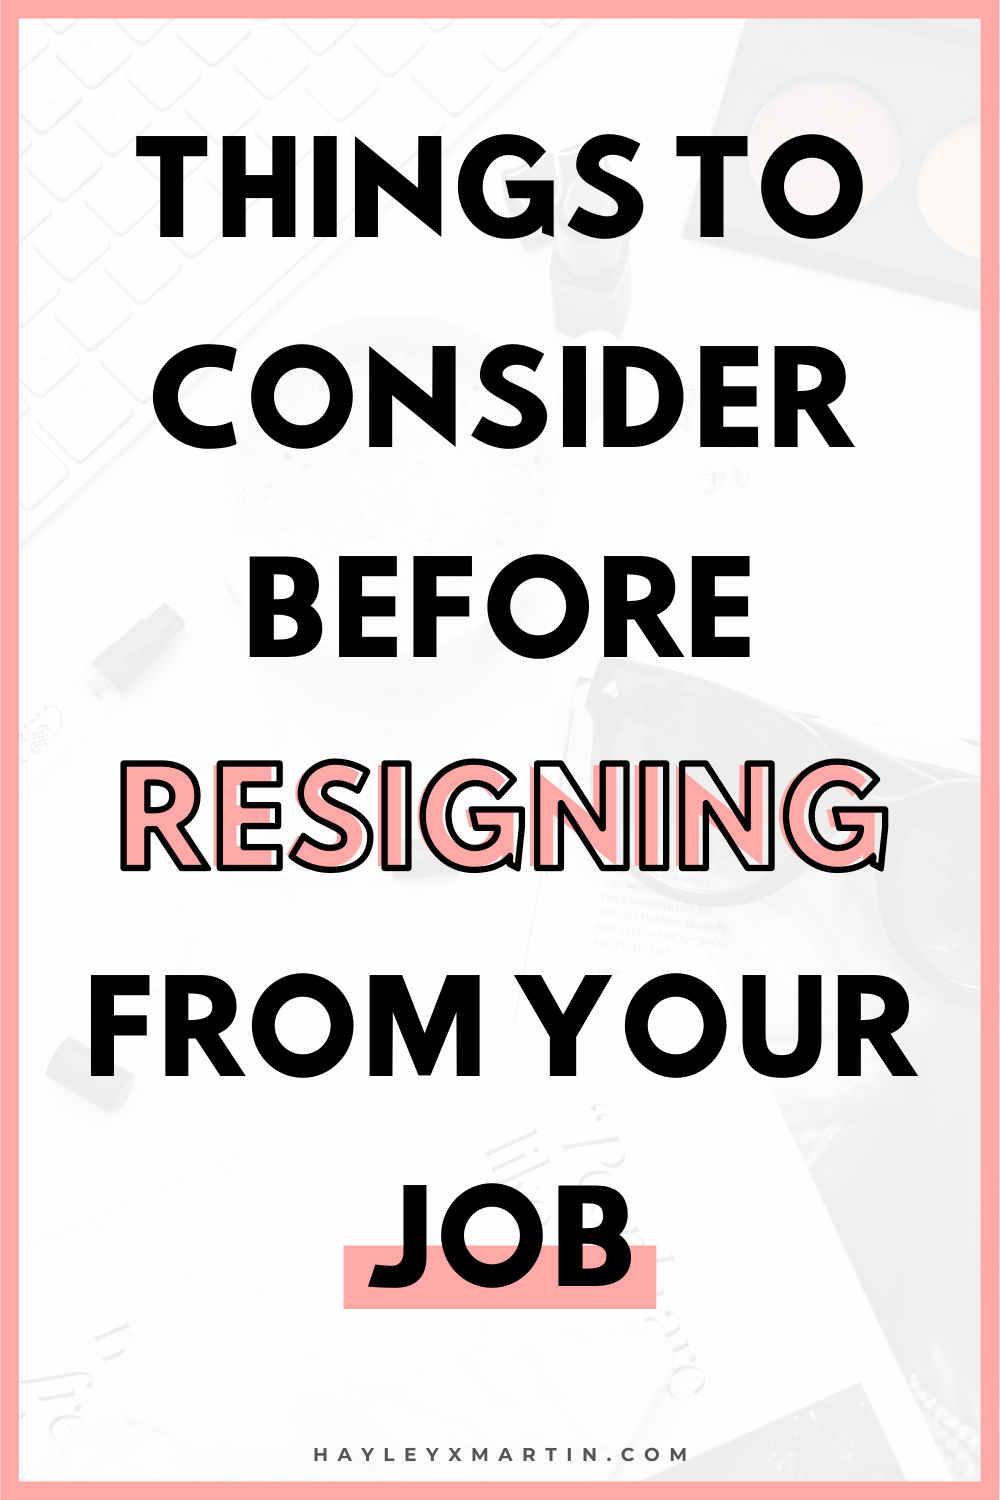 THINGS TO CONSIDER BEFORE RESIGNING FROM YOUR JOB | HAYLEYXMARTIN